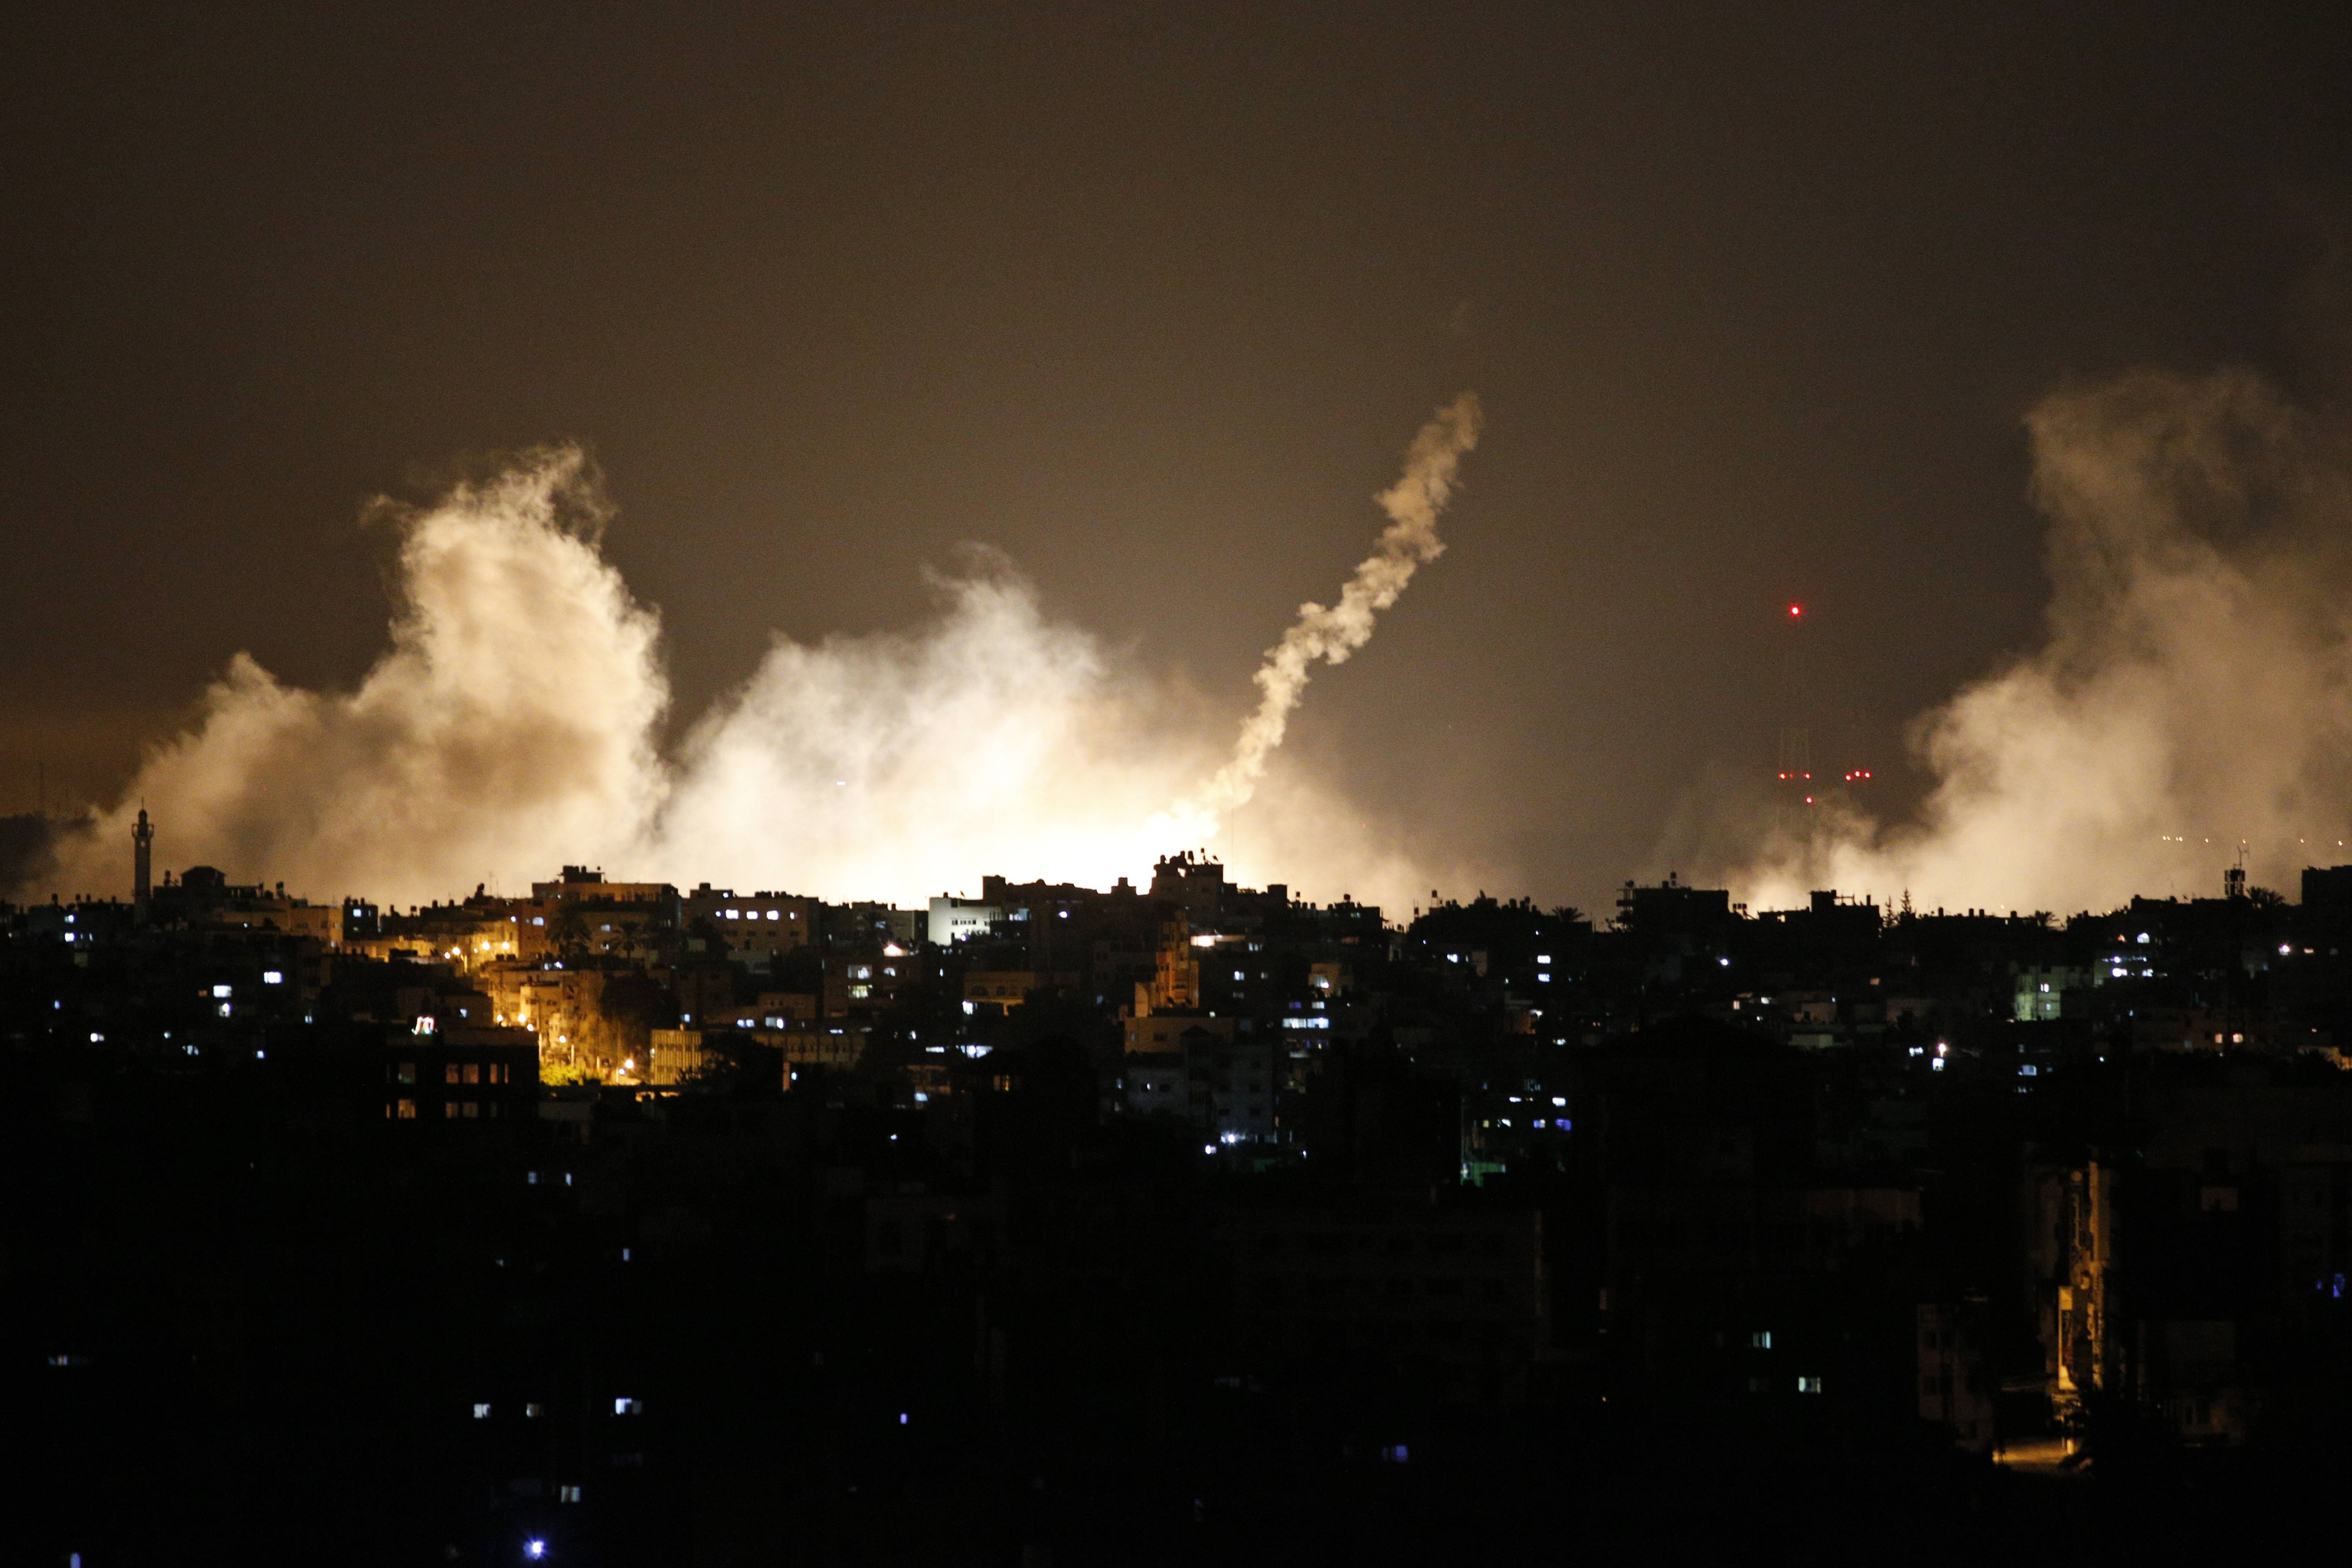 Smoke from flares rises in the sky in Gaza City, in the northern Gaza Strip, Thursday, when Israel launched a large-scale ground offensive, escalating a 10-day military operation to try to destroy Hamas' weapons arsenal, rocket firing abilities and tunnels under the Palestinian territory's border with Israel. It was the first major Israeli ground offensive in Gaza in just over five years.